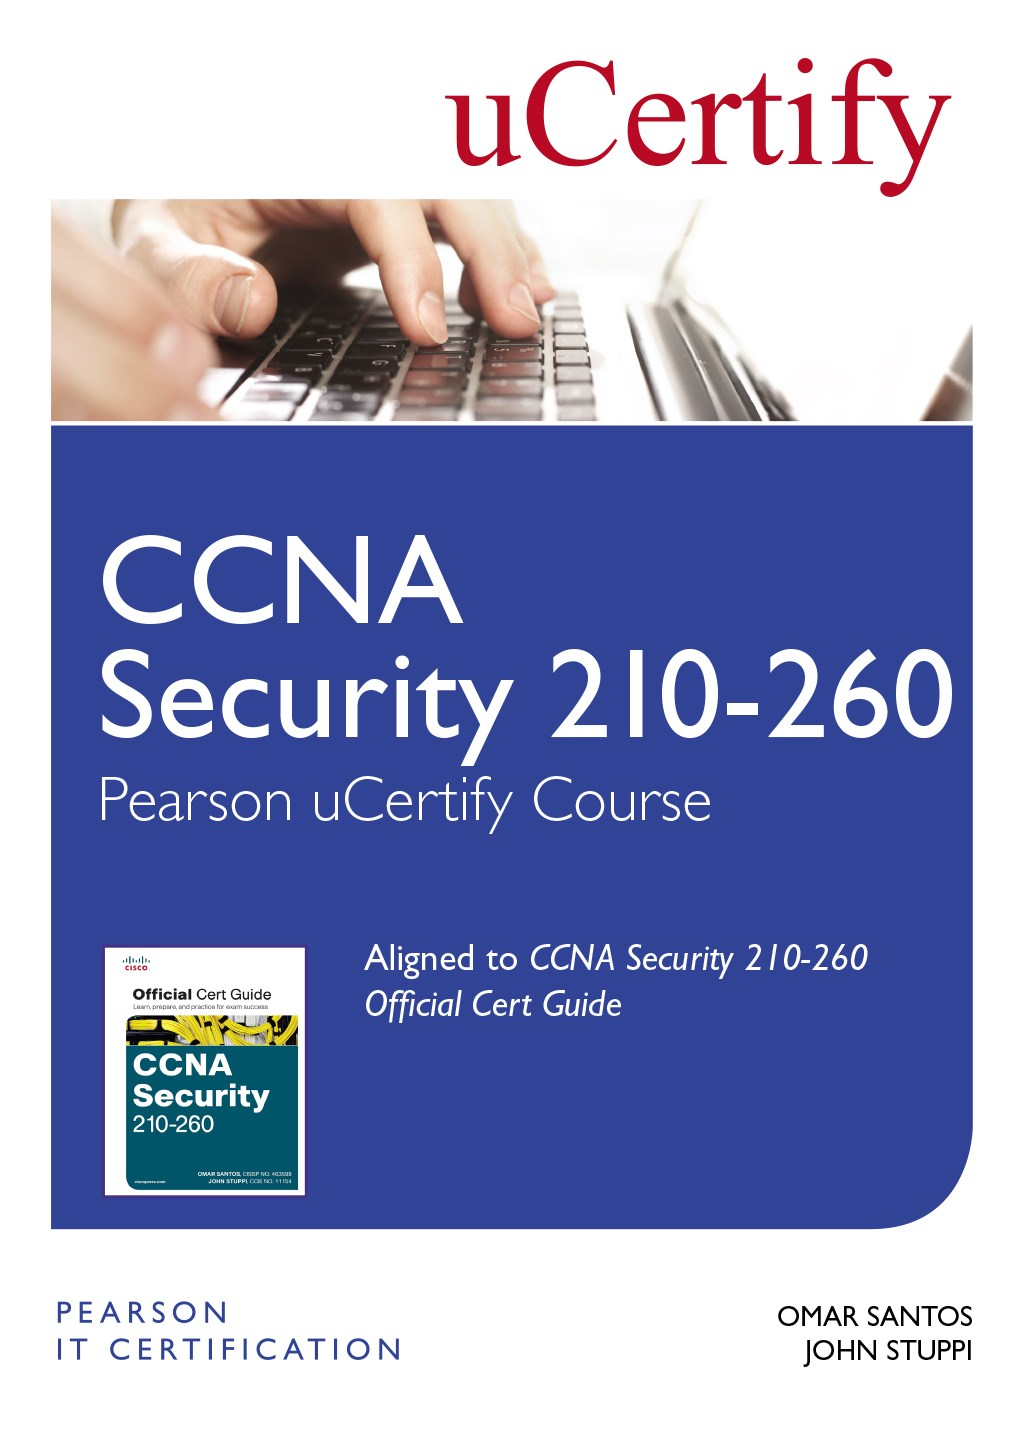 CCNA Security 210-260 Pearson uCertify Course Student Access Card